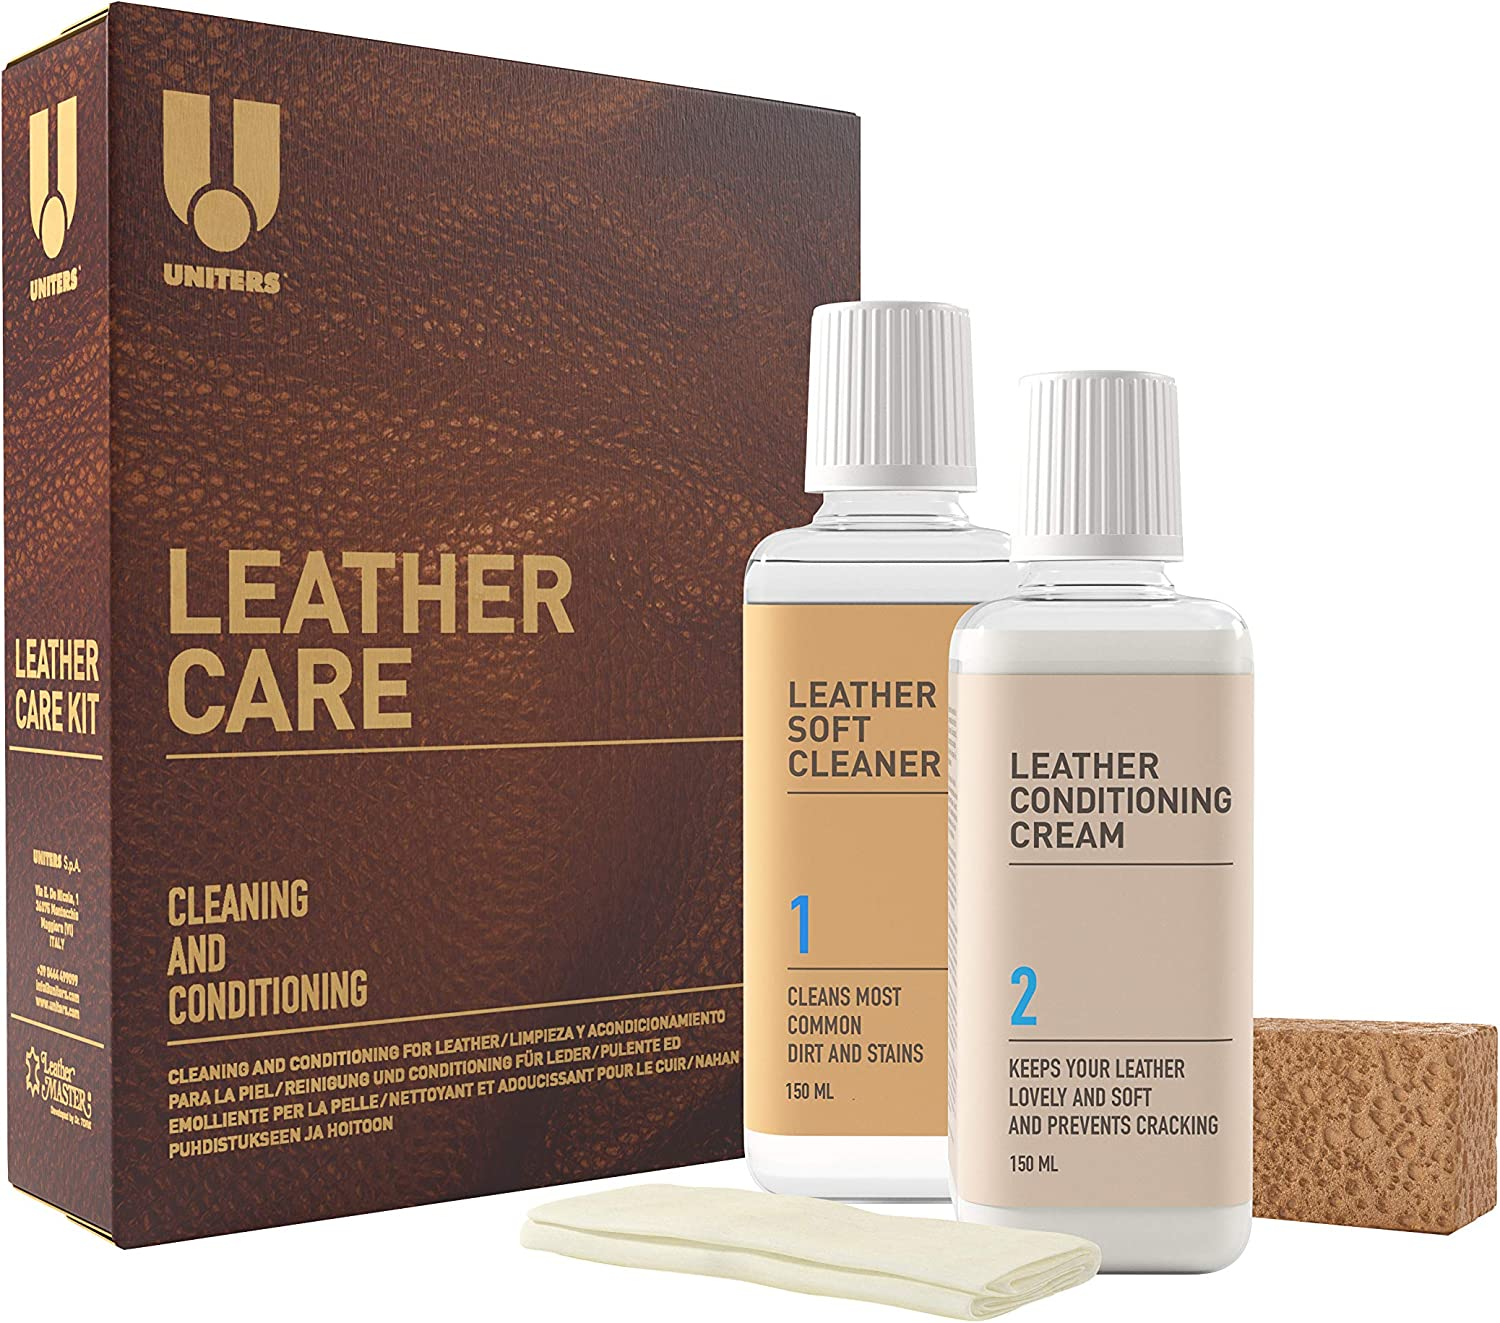 UNITERS Leather Care Kit - 2 Pack Leather Cleaner and Protection Cream for Furniture, Sofa, Car Seat, Handbag, Wallets, and Jackets - Stain, Oil, Dirt Remover and Protector - 150 ml Bottles